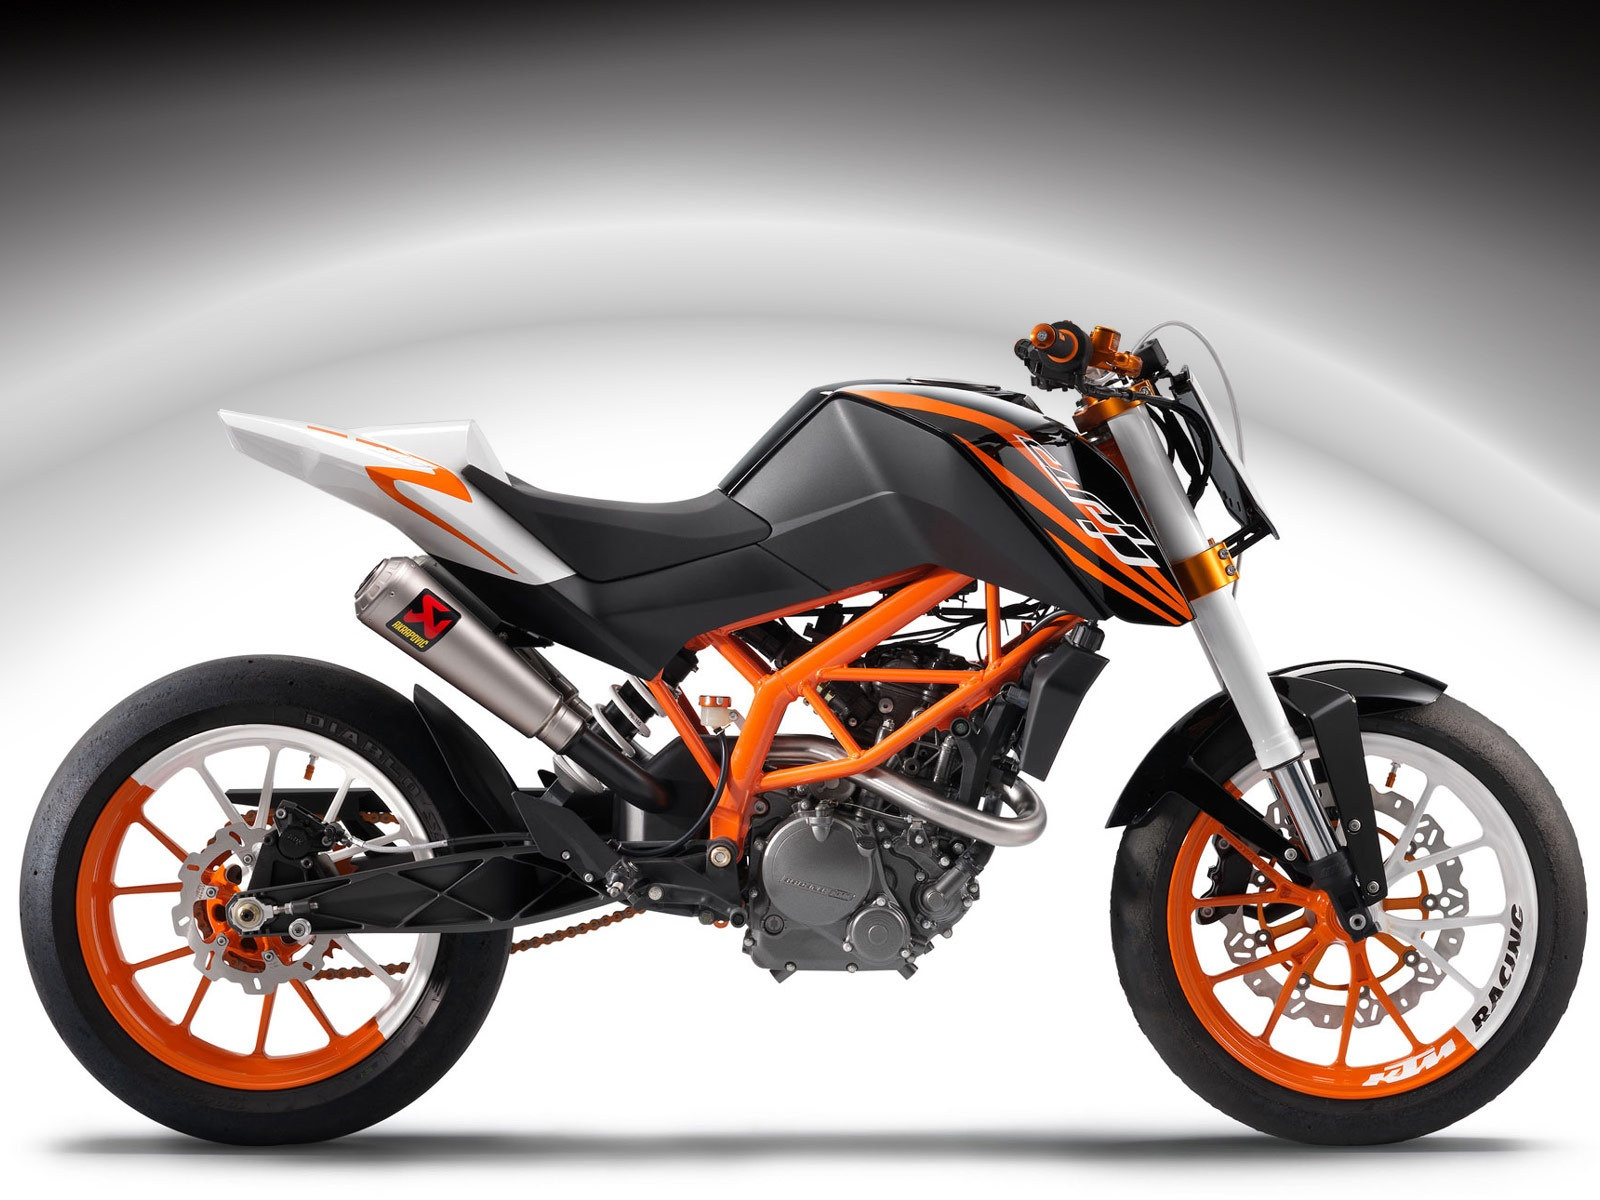 ktm 125 duke wallpapers 1600x1200 403841. Black Bedroom Furniture Sets. Home Design Ideas